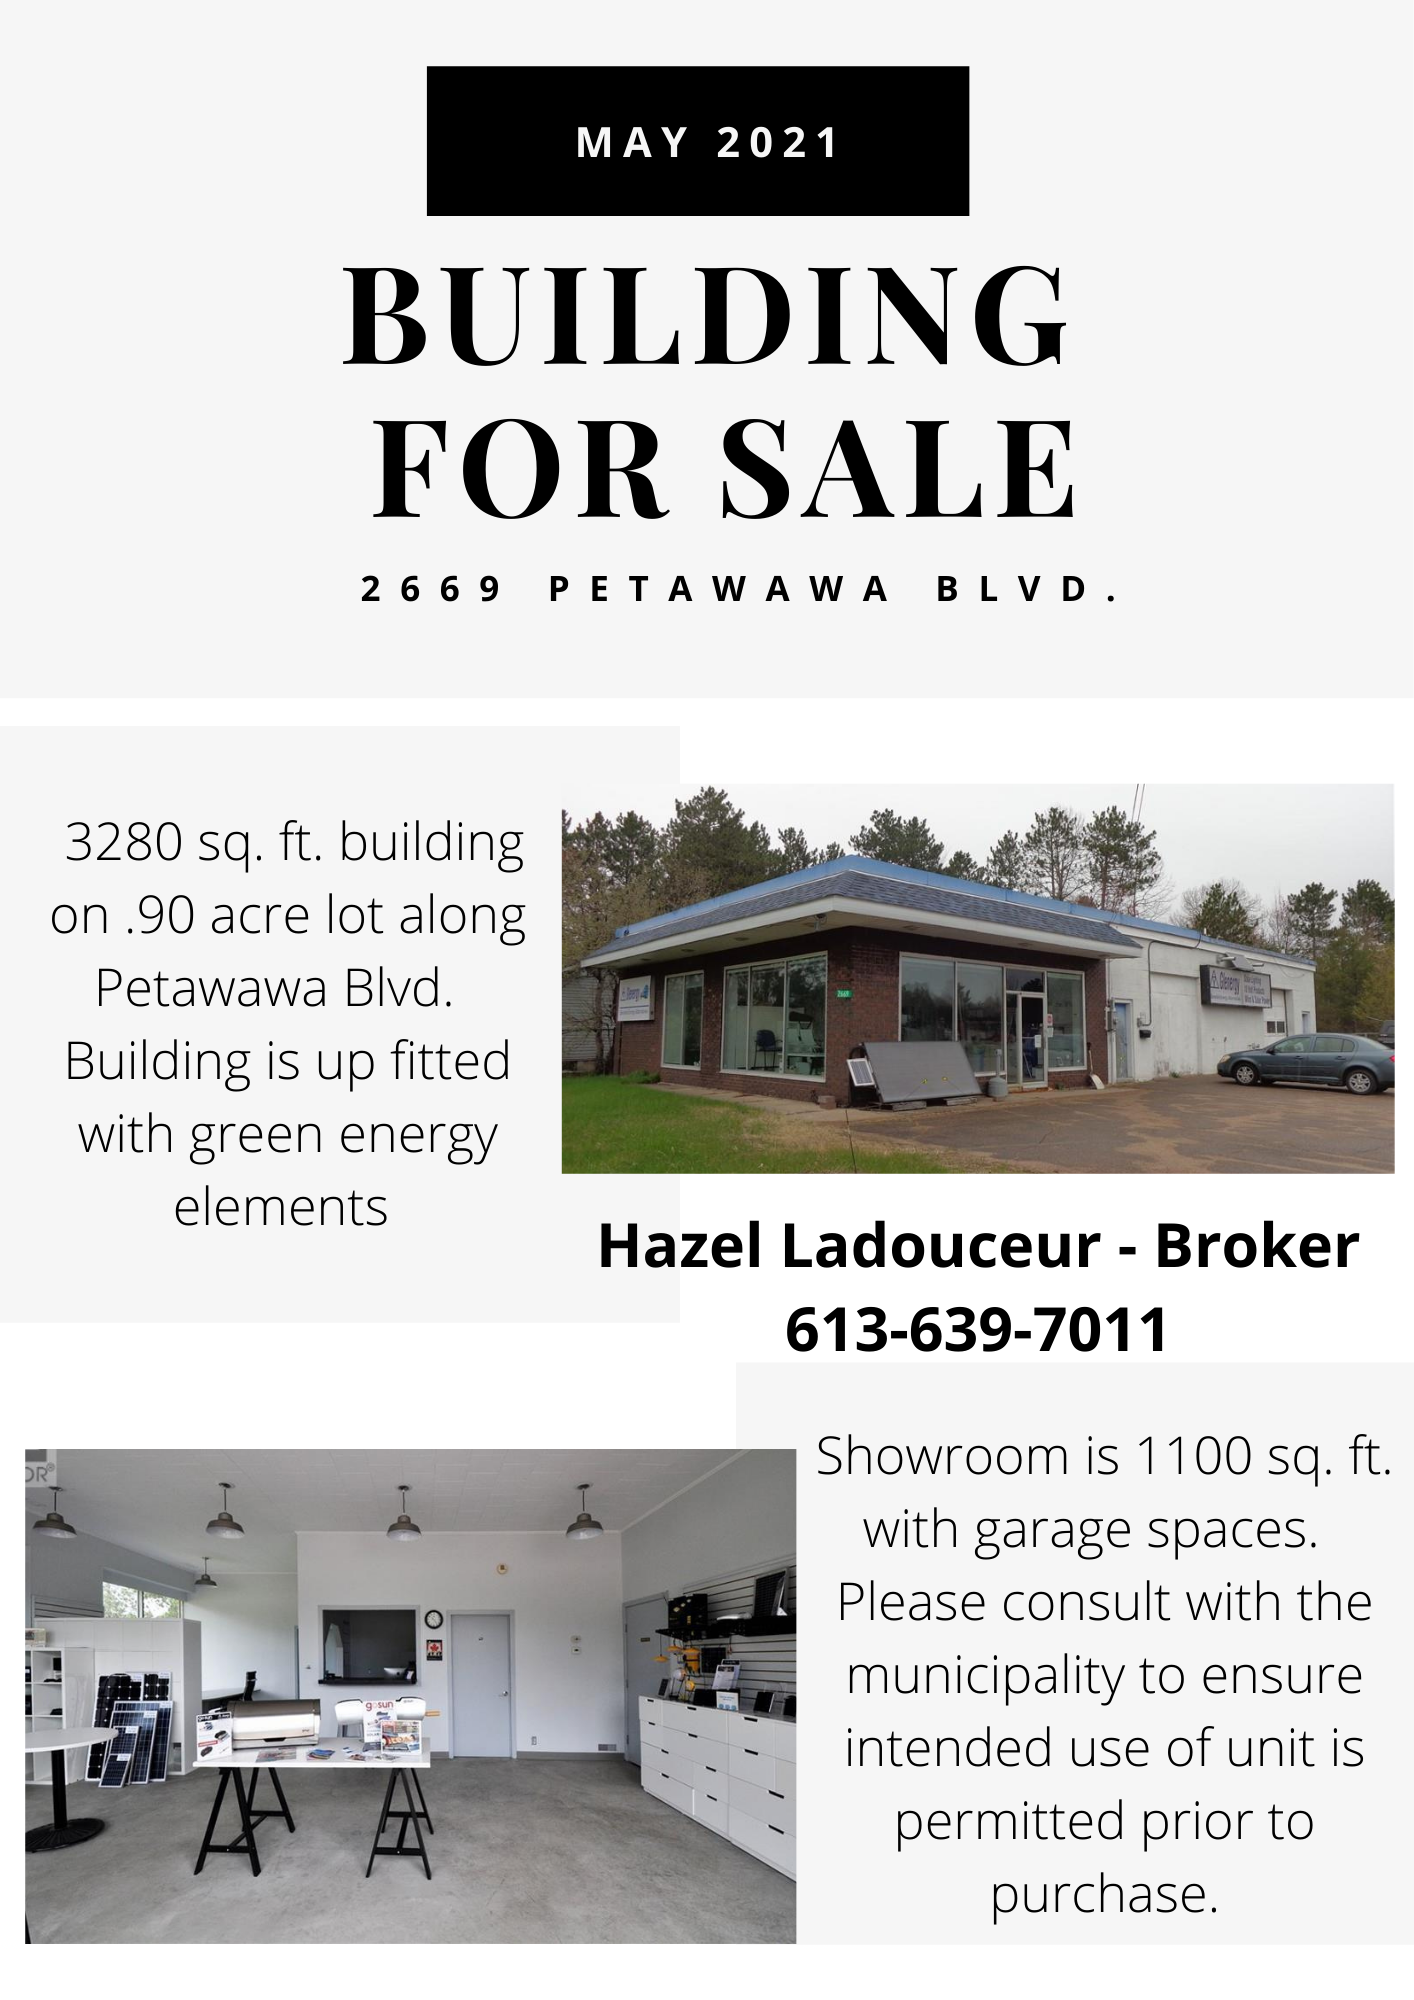 a sales listing for a commercial property in Petawawa.